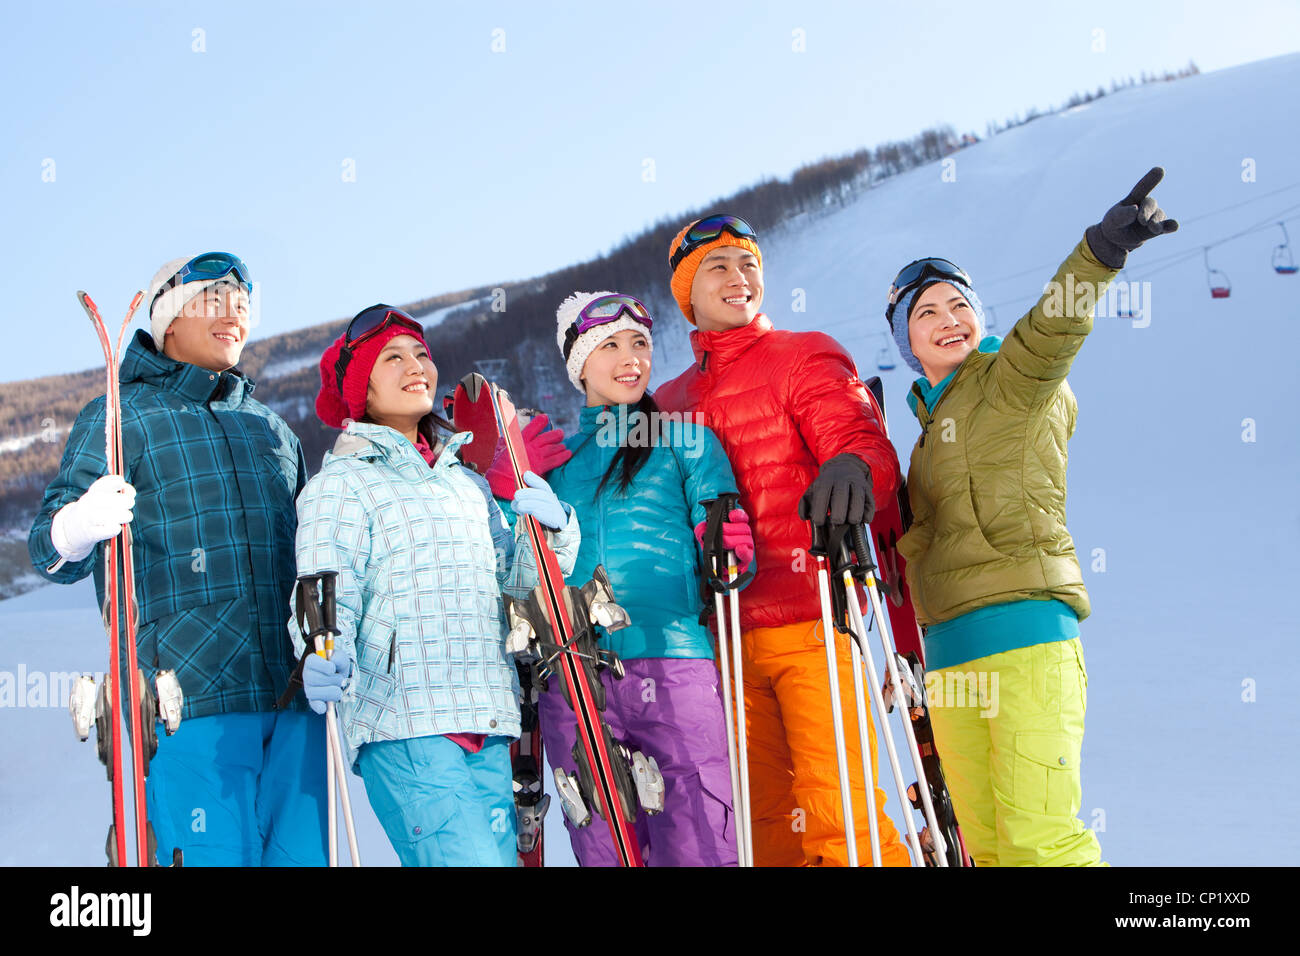 Young people going for skiing - Stock Image